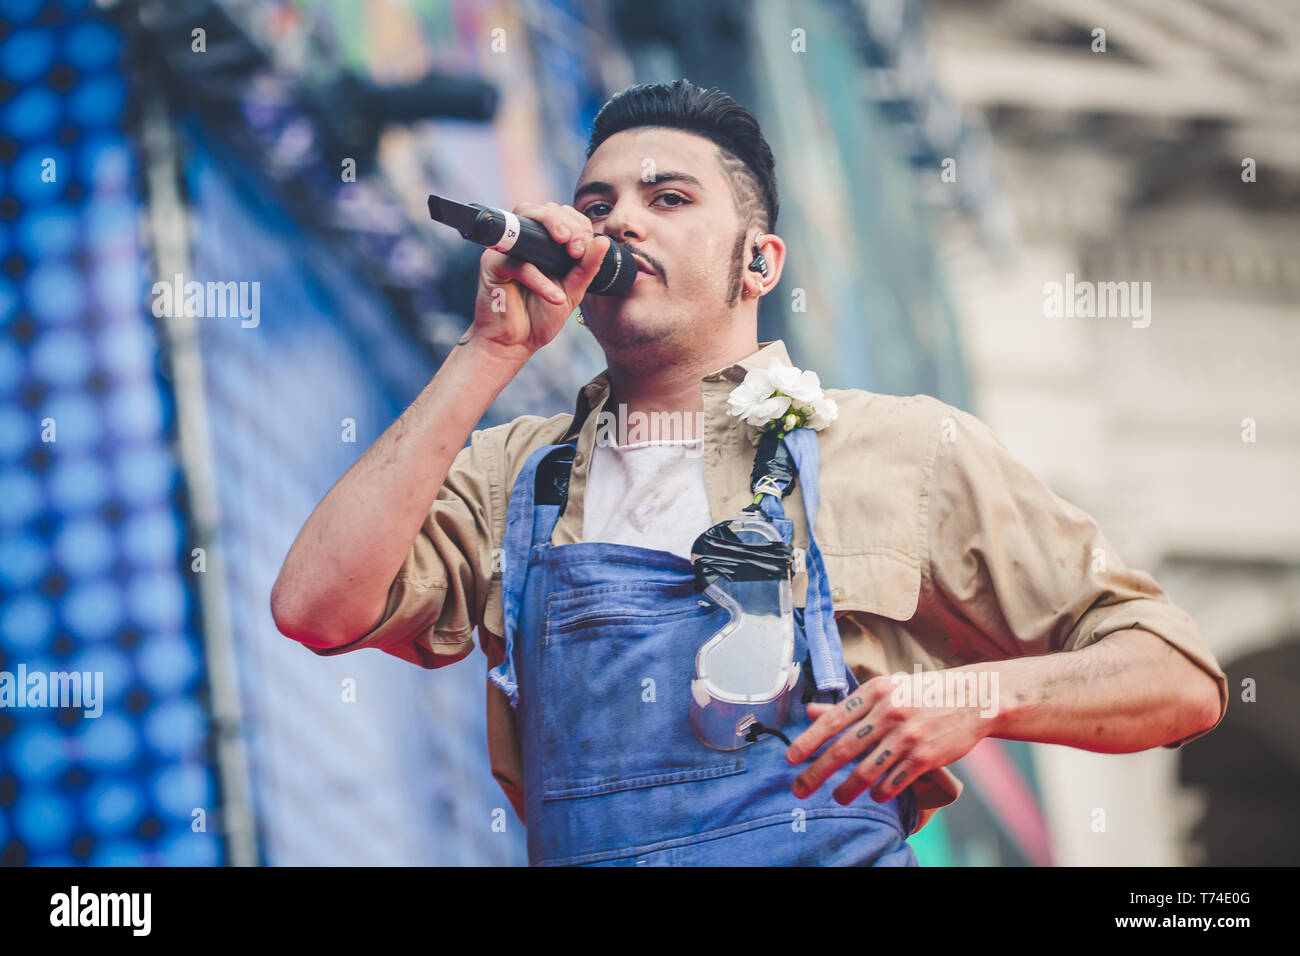 "Rome, Italy. 01st May, 2019. Izi, pseudonym of Diego Germini, rapper, singer-songwriter and Italian record producer, performed live on the stage of Primo Maggio Concert. The ""May Day"" Concert is an event organized every year in Rome by the labor unions CGL, CISL and UIL to celebrate workers' rights with music. Credit: Luigi Rizzo/Pacific Press/Alamy Live News Stock Photo"